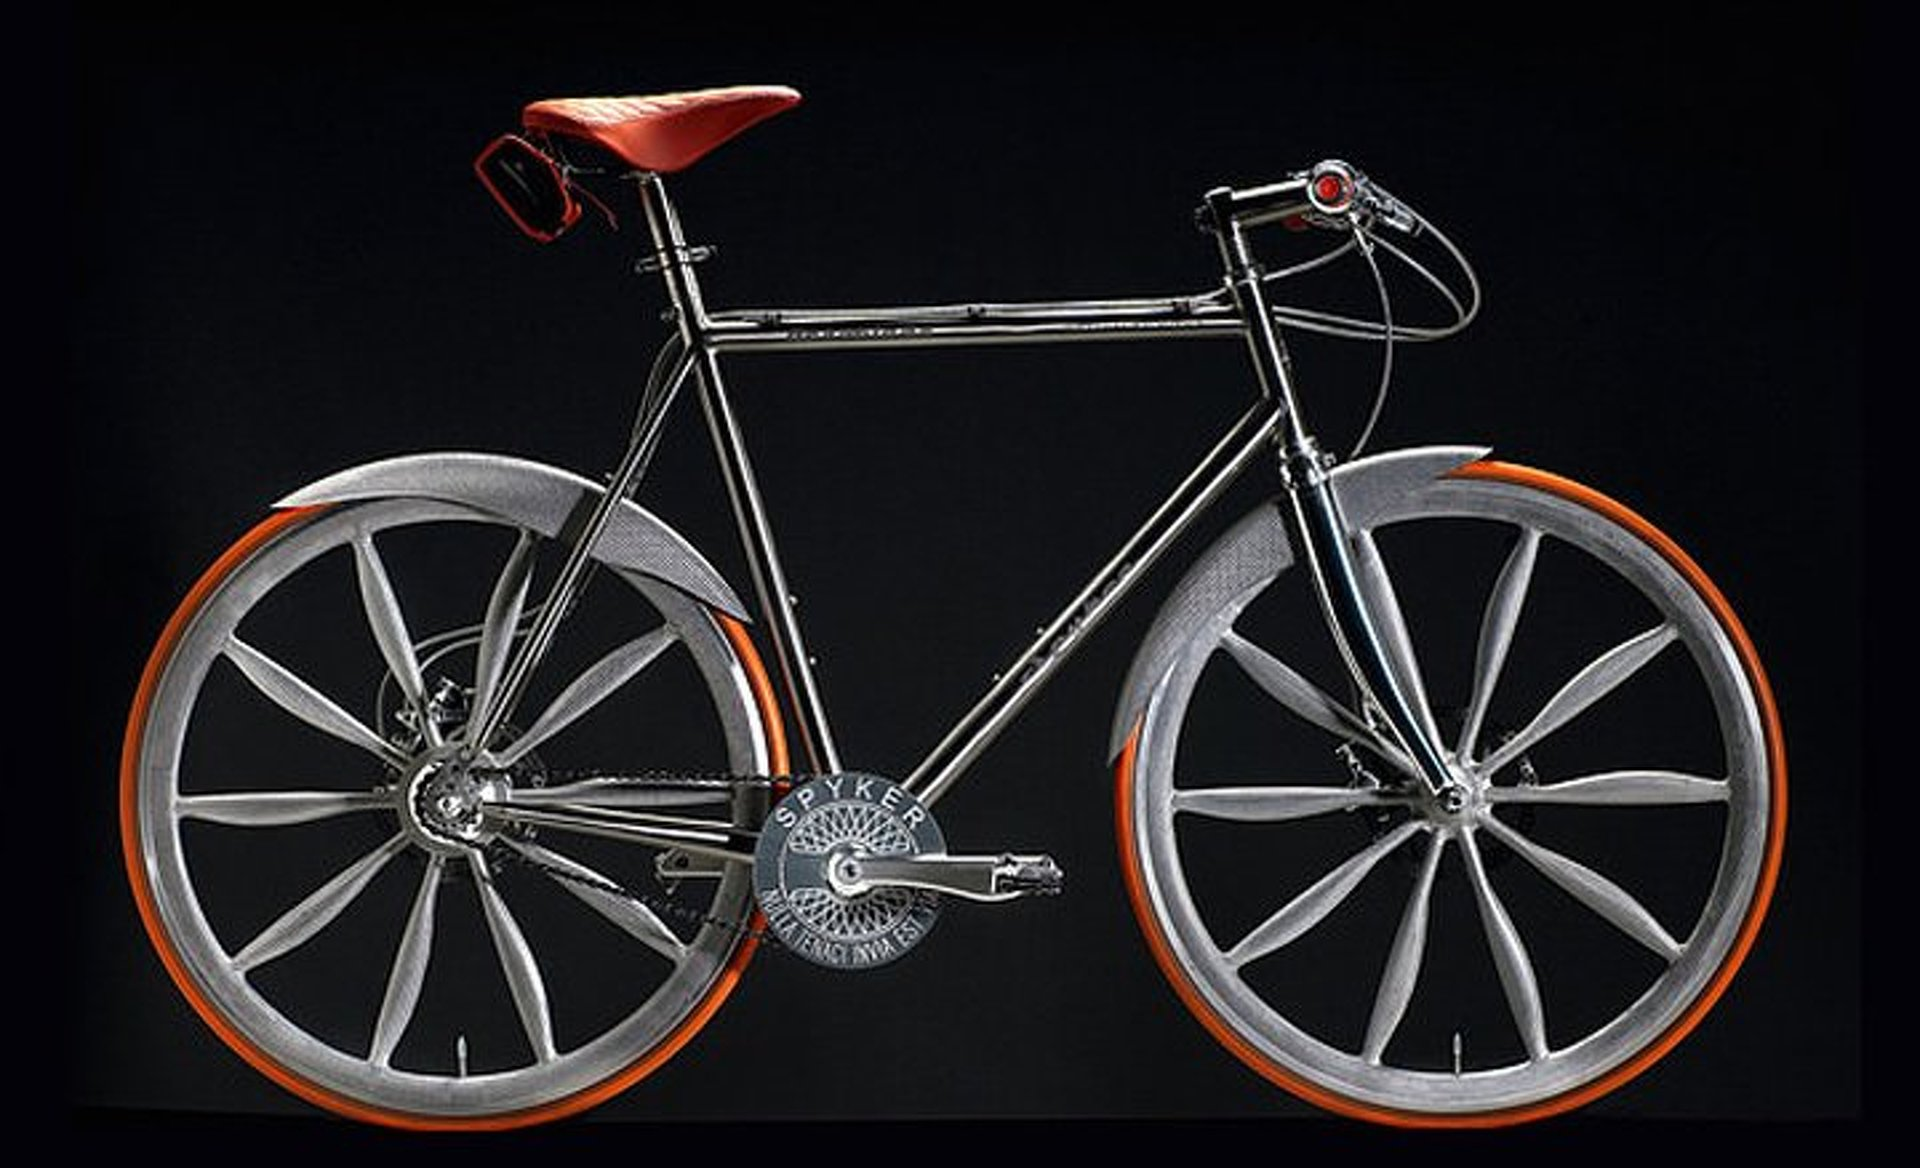 7 Bicycles from Car Brands to Pedal Off With Your Disposable Income